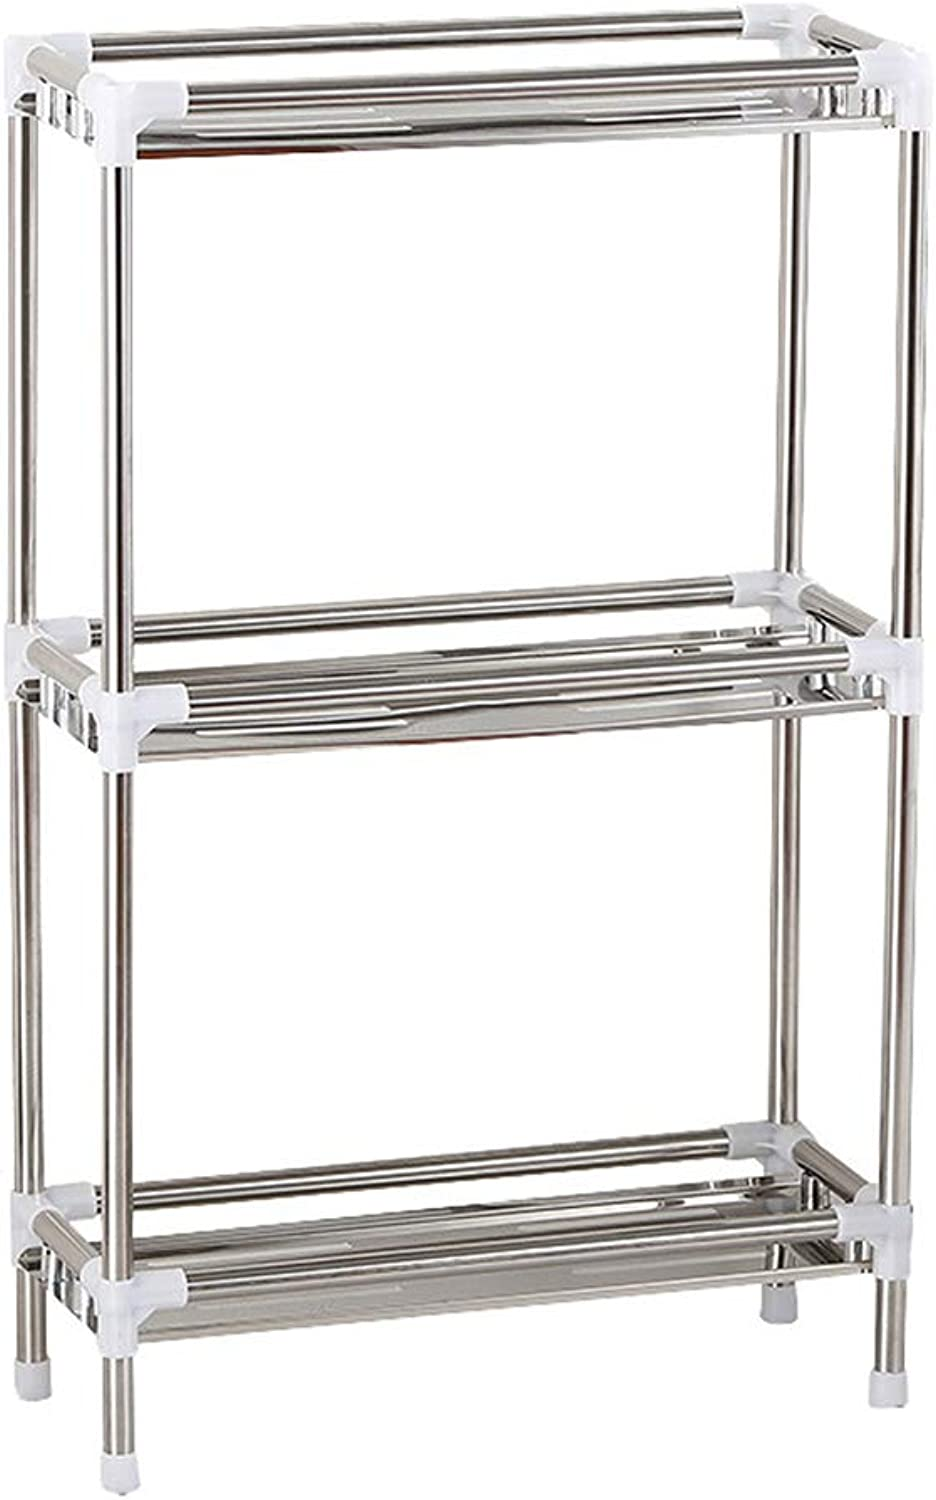 Household Stainless Steel Floor Storage Rack Bathroom Multi-Layer Finishing Rack